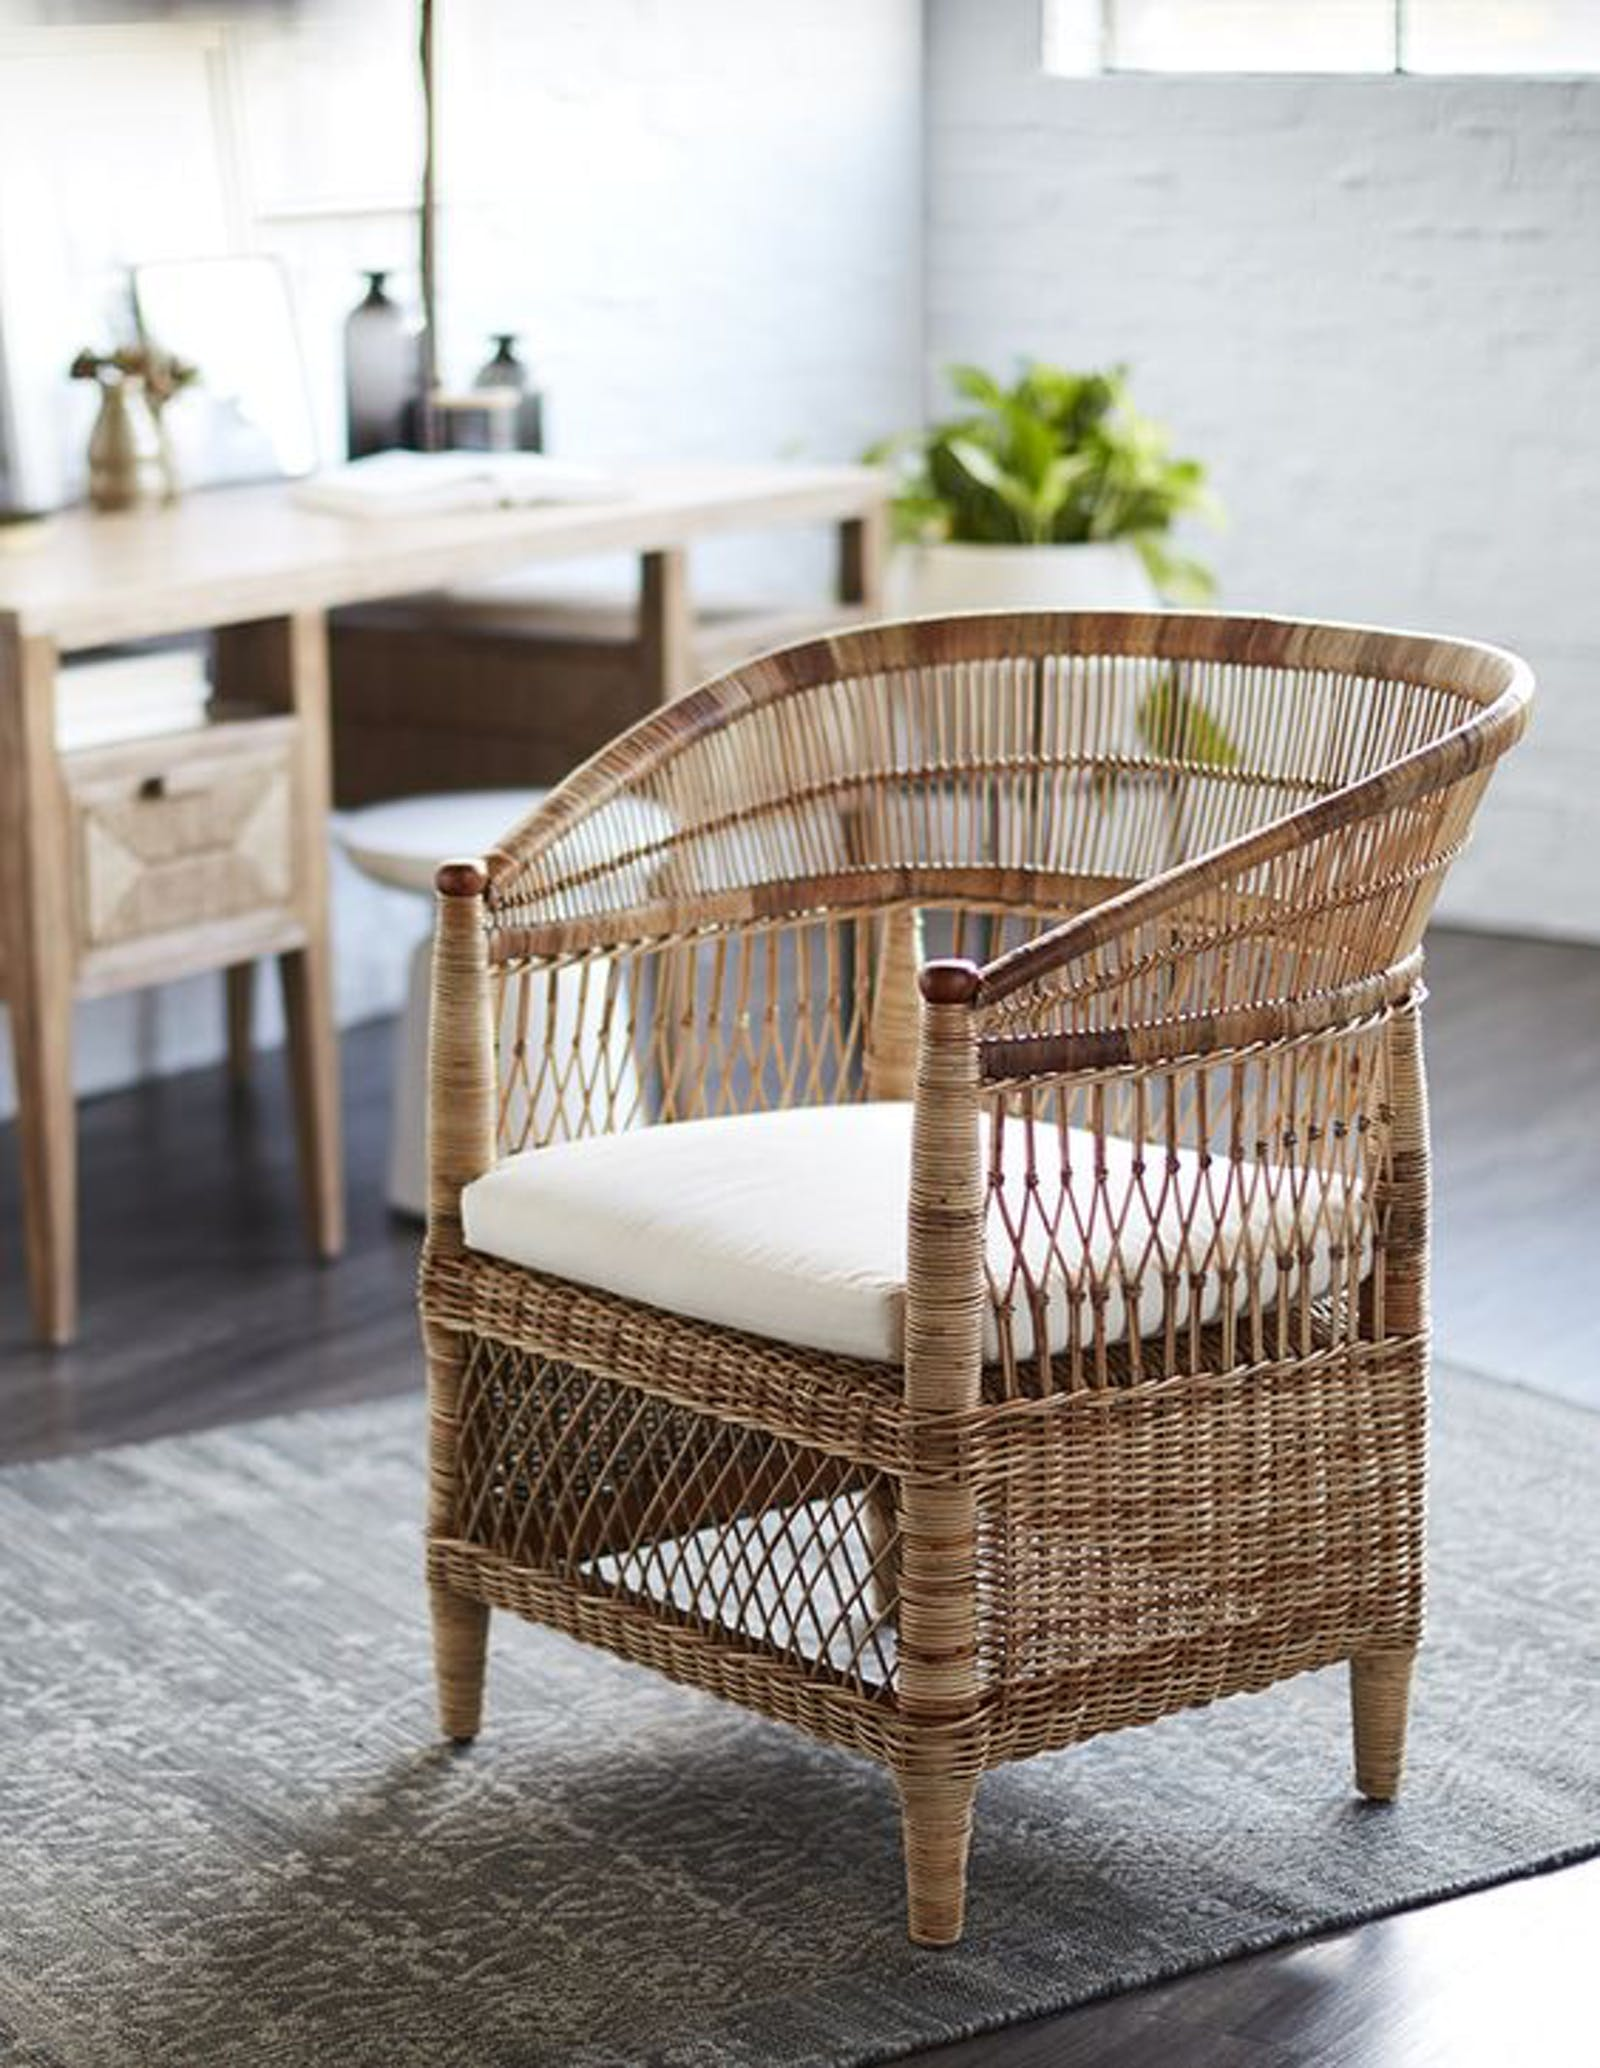 Beautiful rattan Malawian chair in a living room on a grey rug